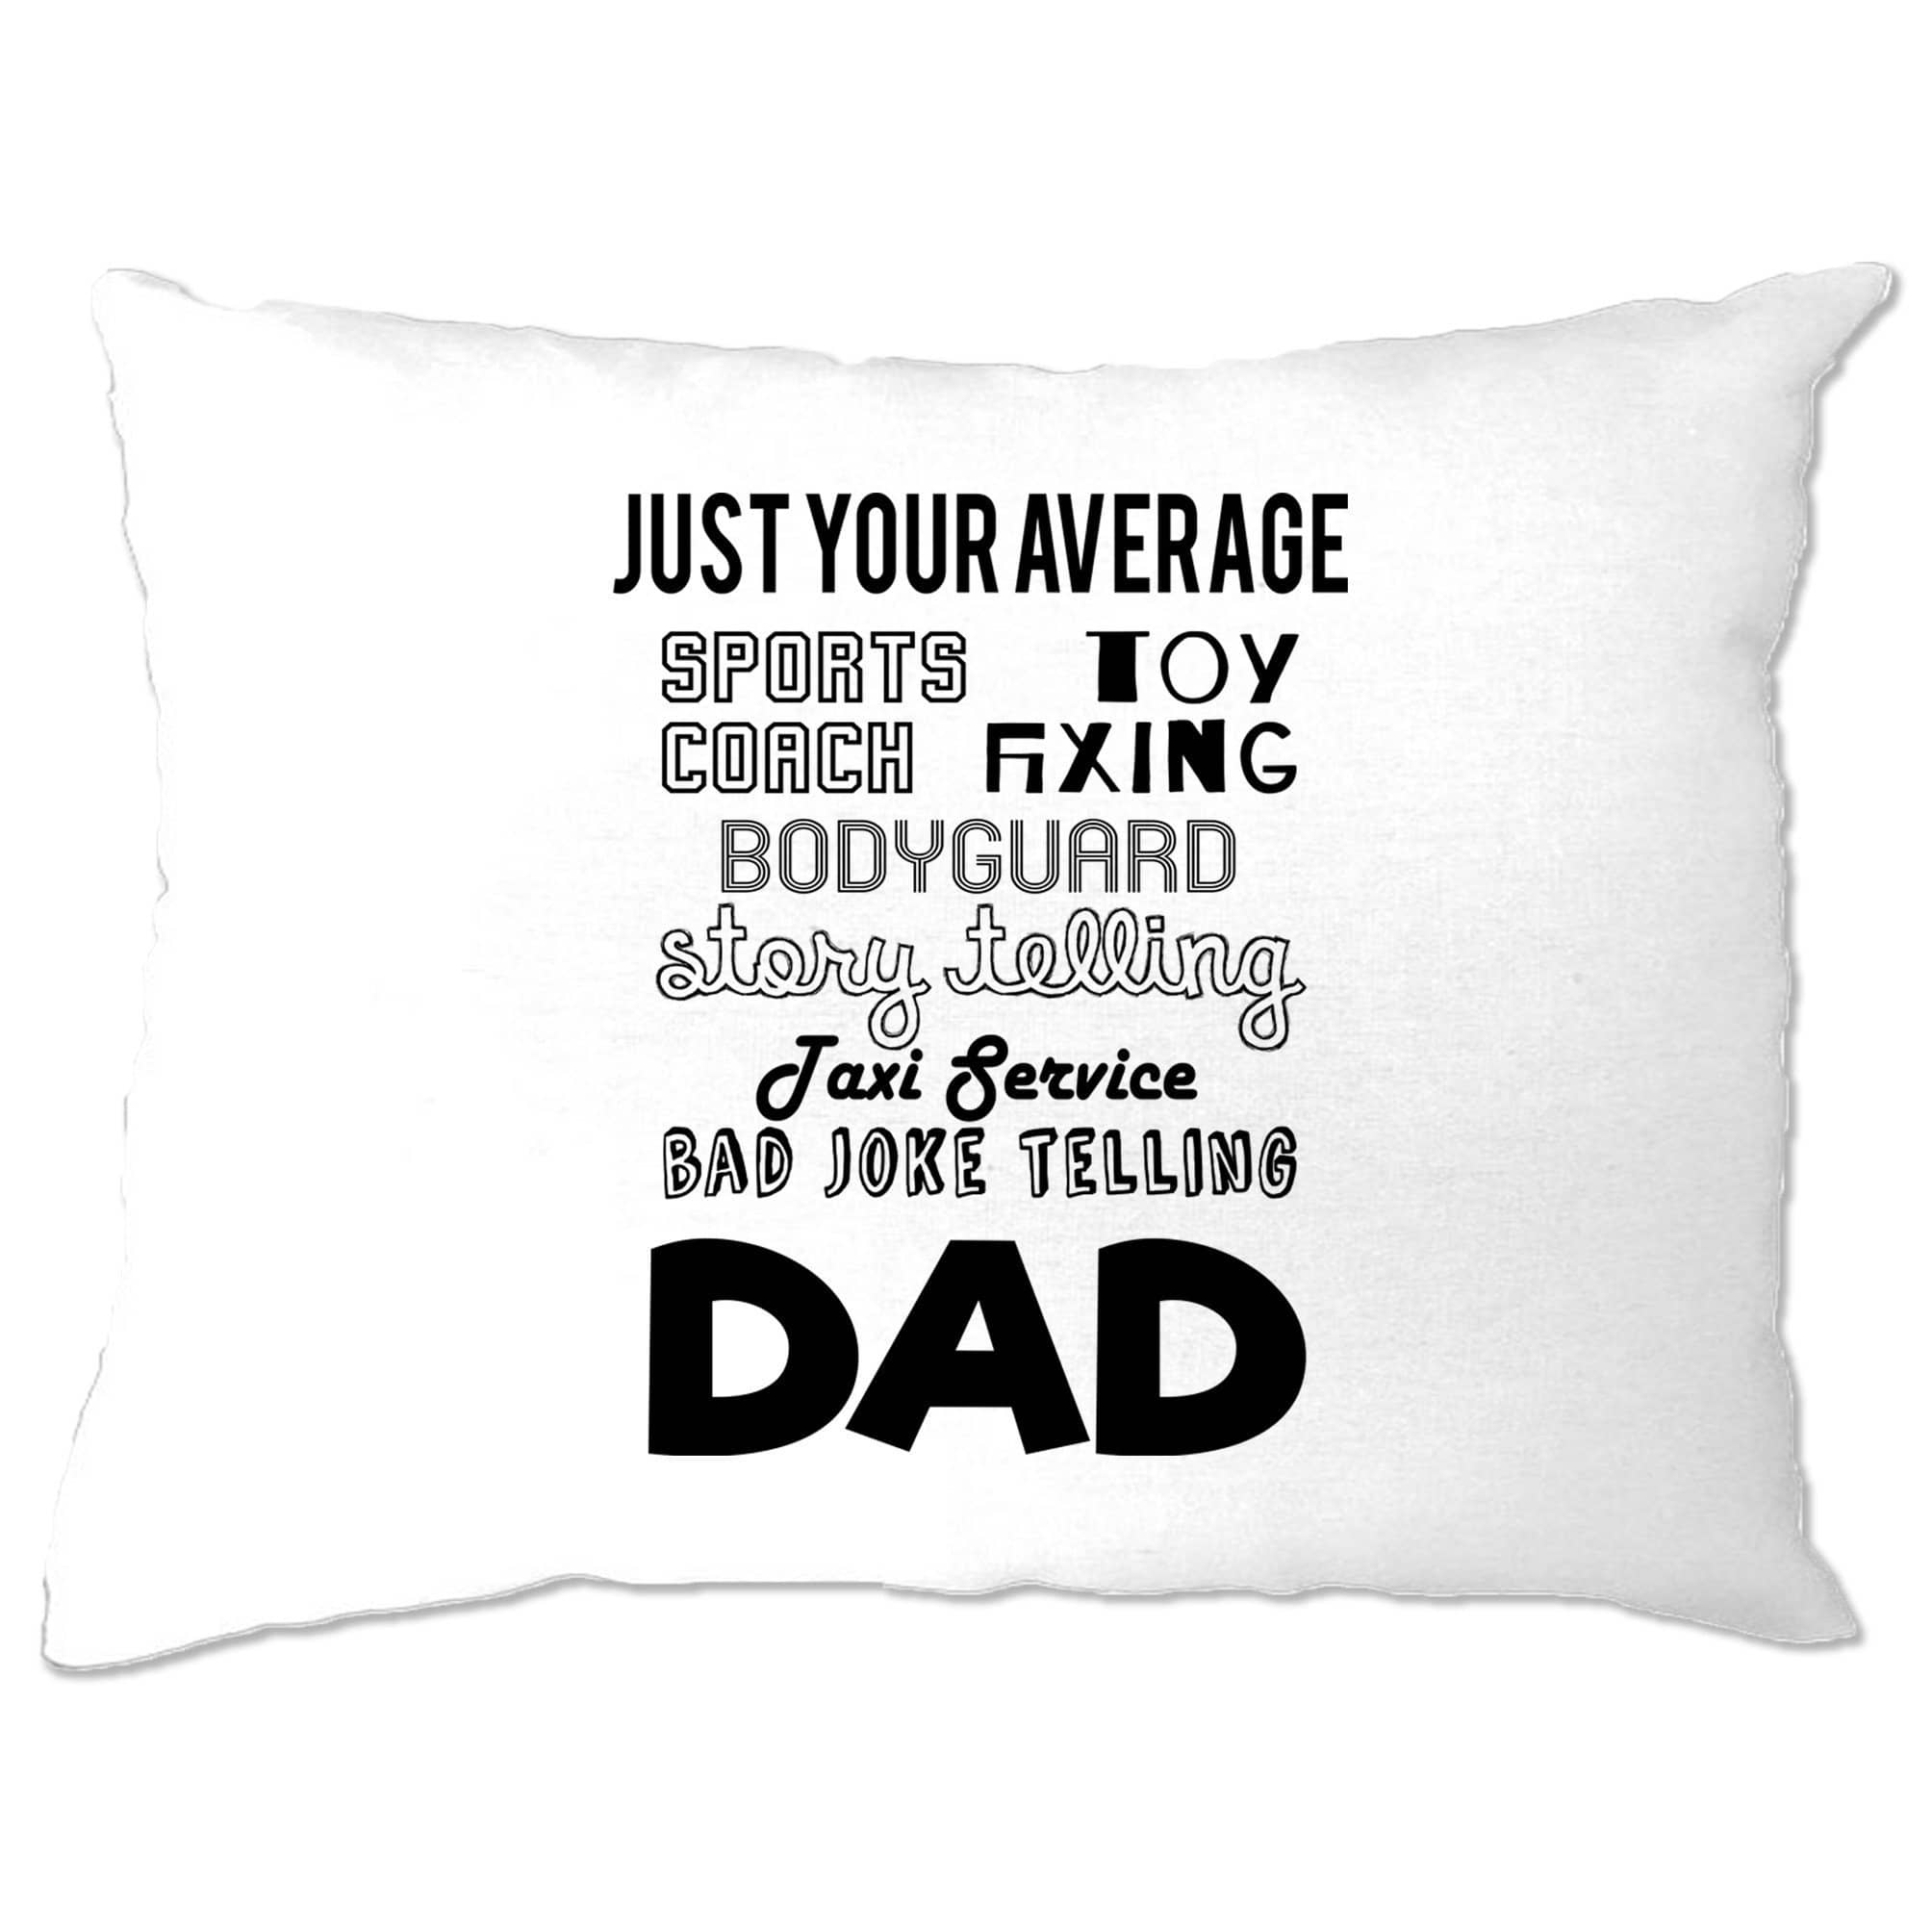 Father's Day Pillow Case Just Your Average Superhero Dad